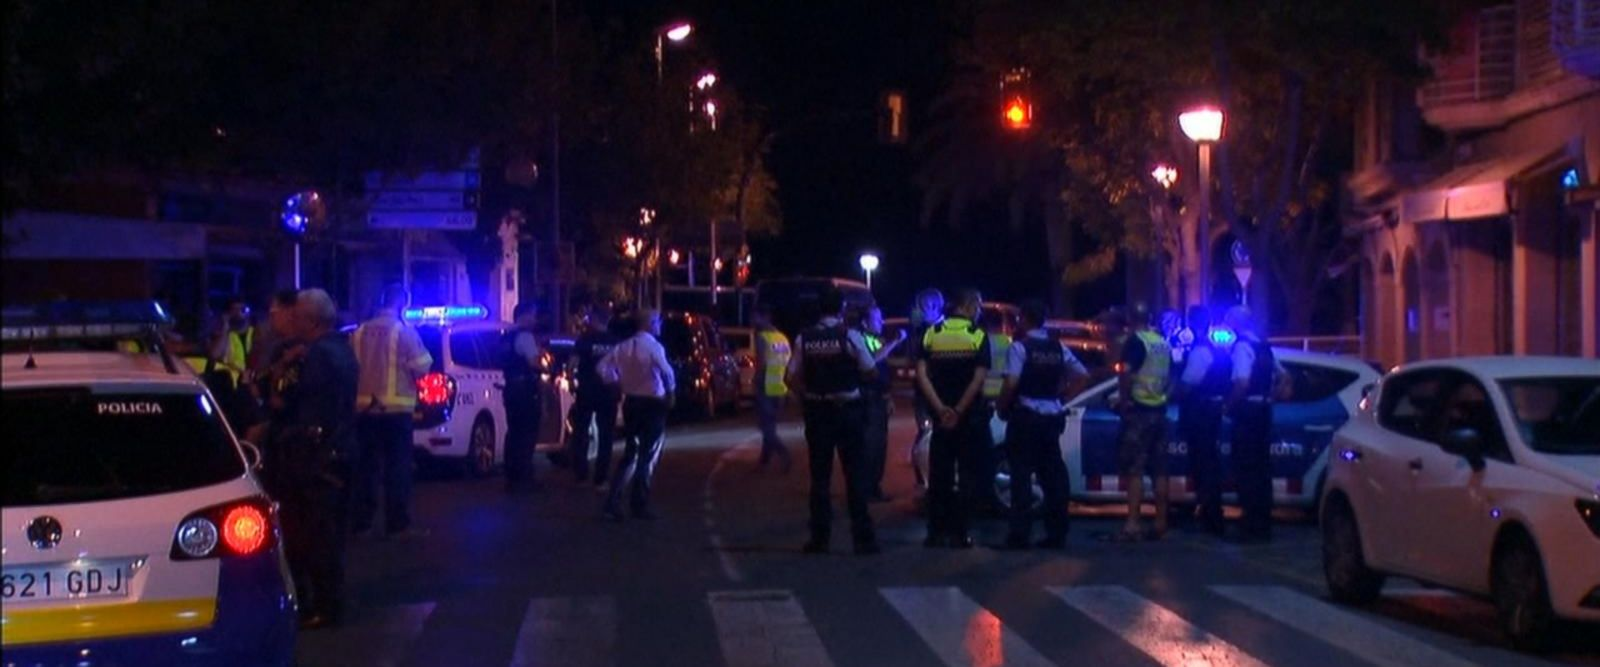 VIDEO: Manhunt on after deadly Barcelona attack